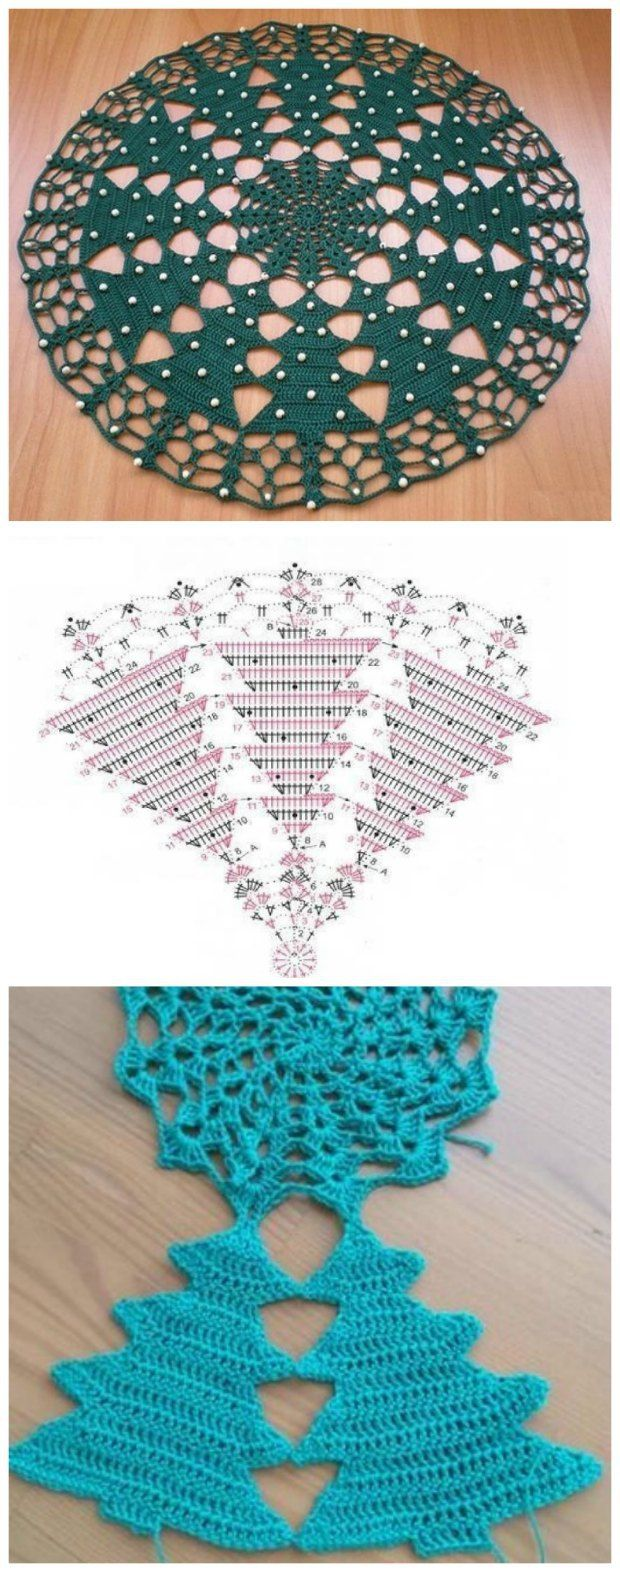 Crochet a christmas tree doily advanced crochet pattern diagram crochet a christmas tree doily advanced crochet pattern diagram only no written instructions bankloansurffo Image collections